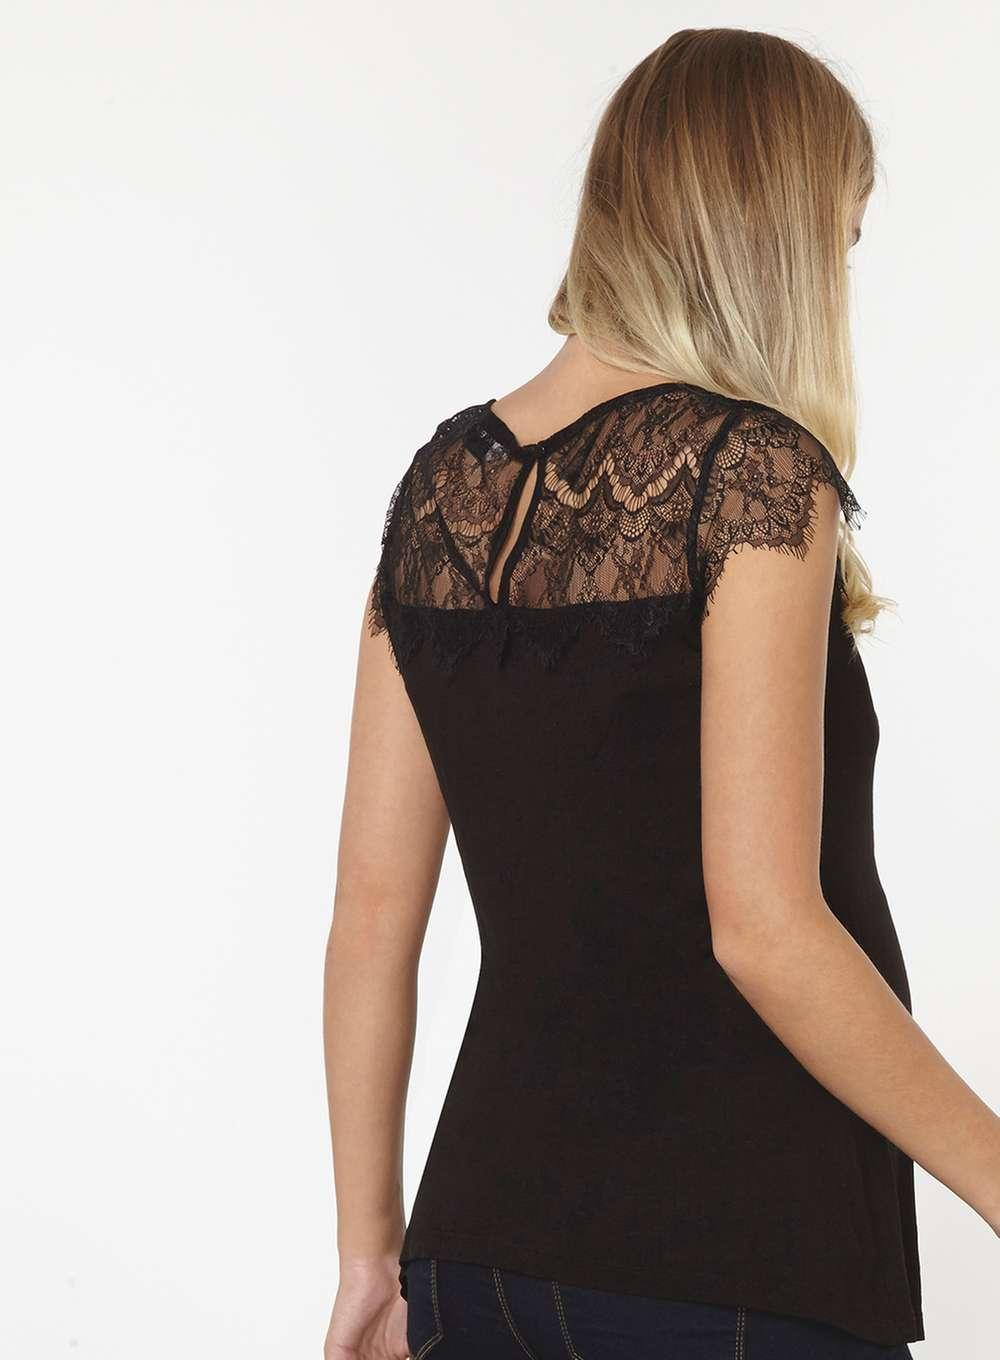 Black plus size paisley lace top dip back hem Save. Was £ Now £ Star by Julien Macdonald Black lace stud embellished shirt Ivory striped lace yoke shell top Save. Was £ Now £ Quiz Olivia's blue lace cut out bodysuit Save. £ Apricot Cream lace crinkle batwing top.